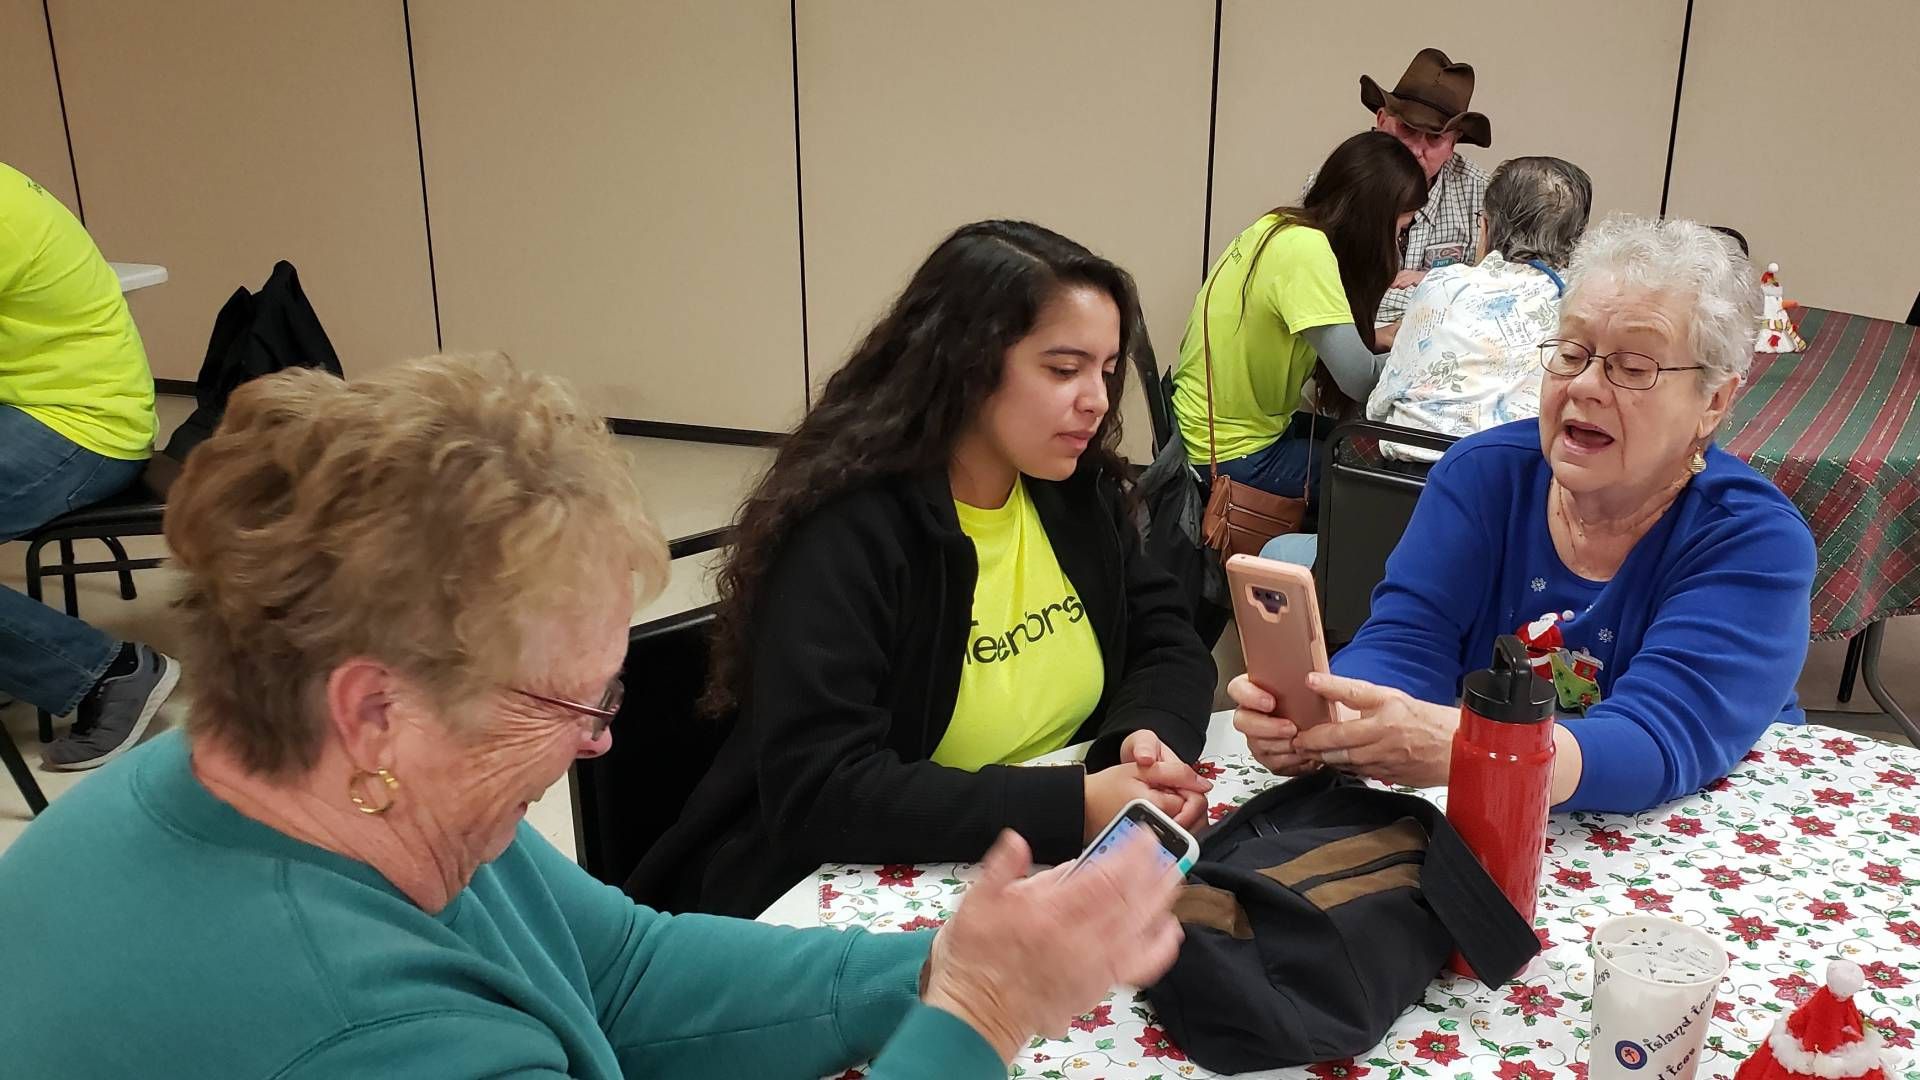 When Teens Share Tech Skills With Seniors, Both Can Feel More Connected | MindShift